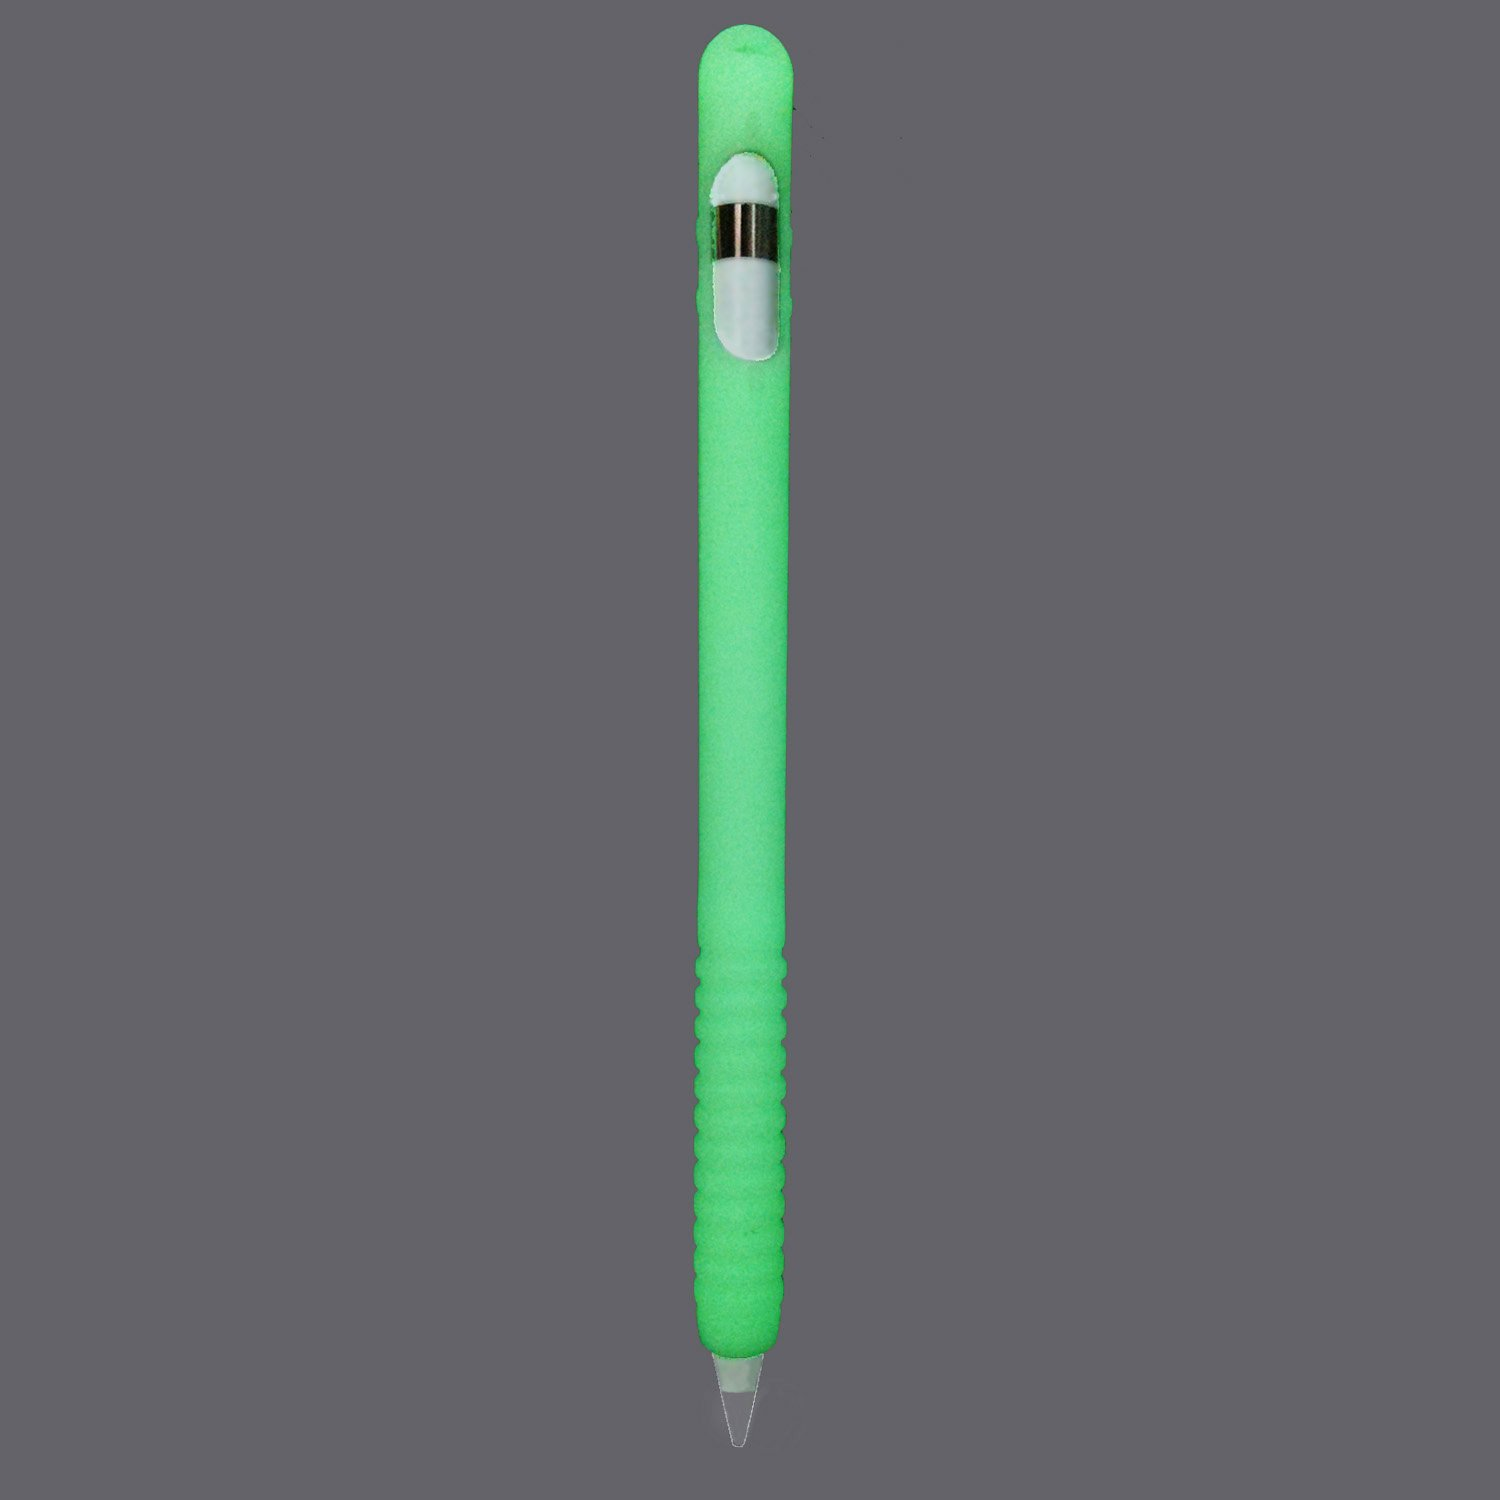 ColorCoral Silicone Cover for Apple Pencil Noctilucent Skin for Apple Stylus Compatible with Apple iPad Pro 9.7' 10.5' 12.9' (Noctilucent) AP004-noctilucent